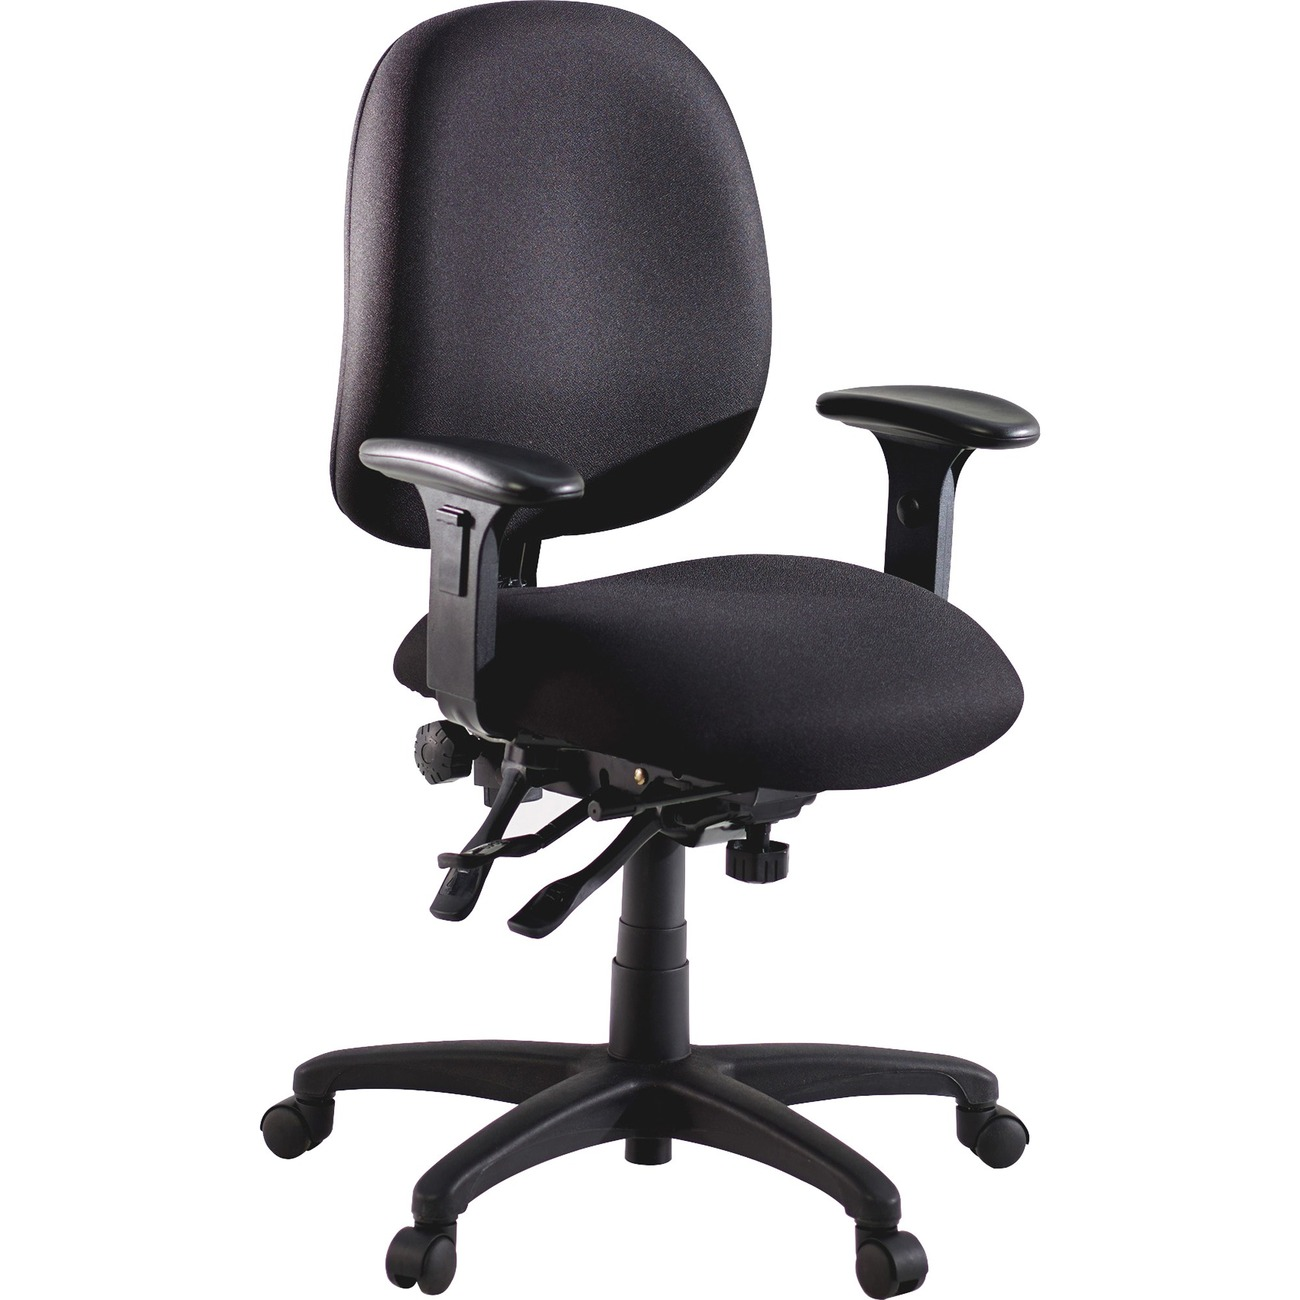 High Performance Ergonomic Task Chair With Contoured Seat And Back ...